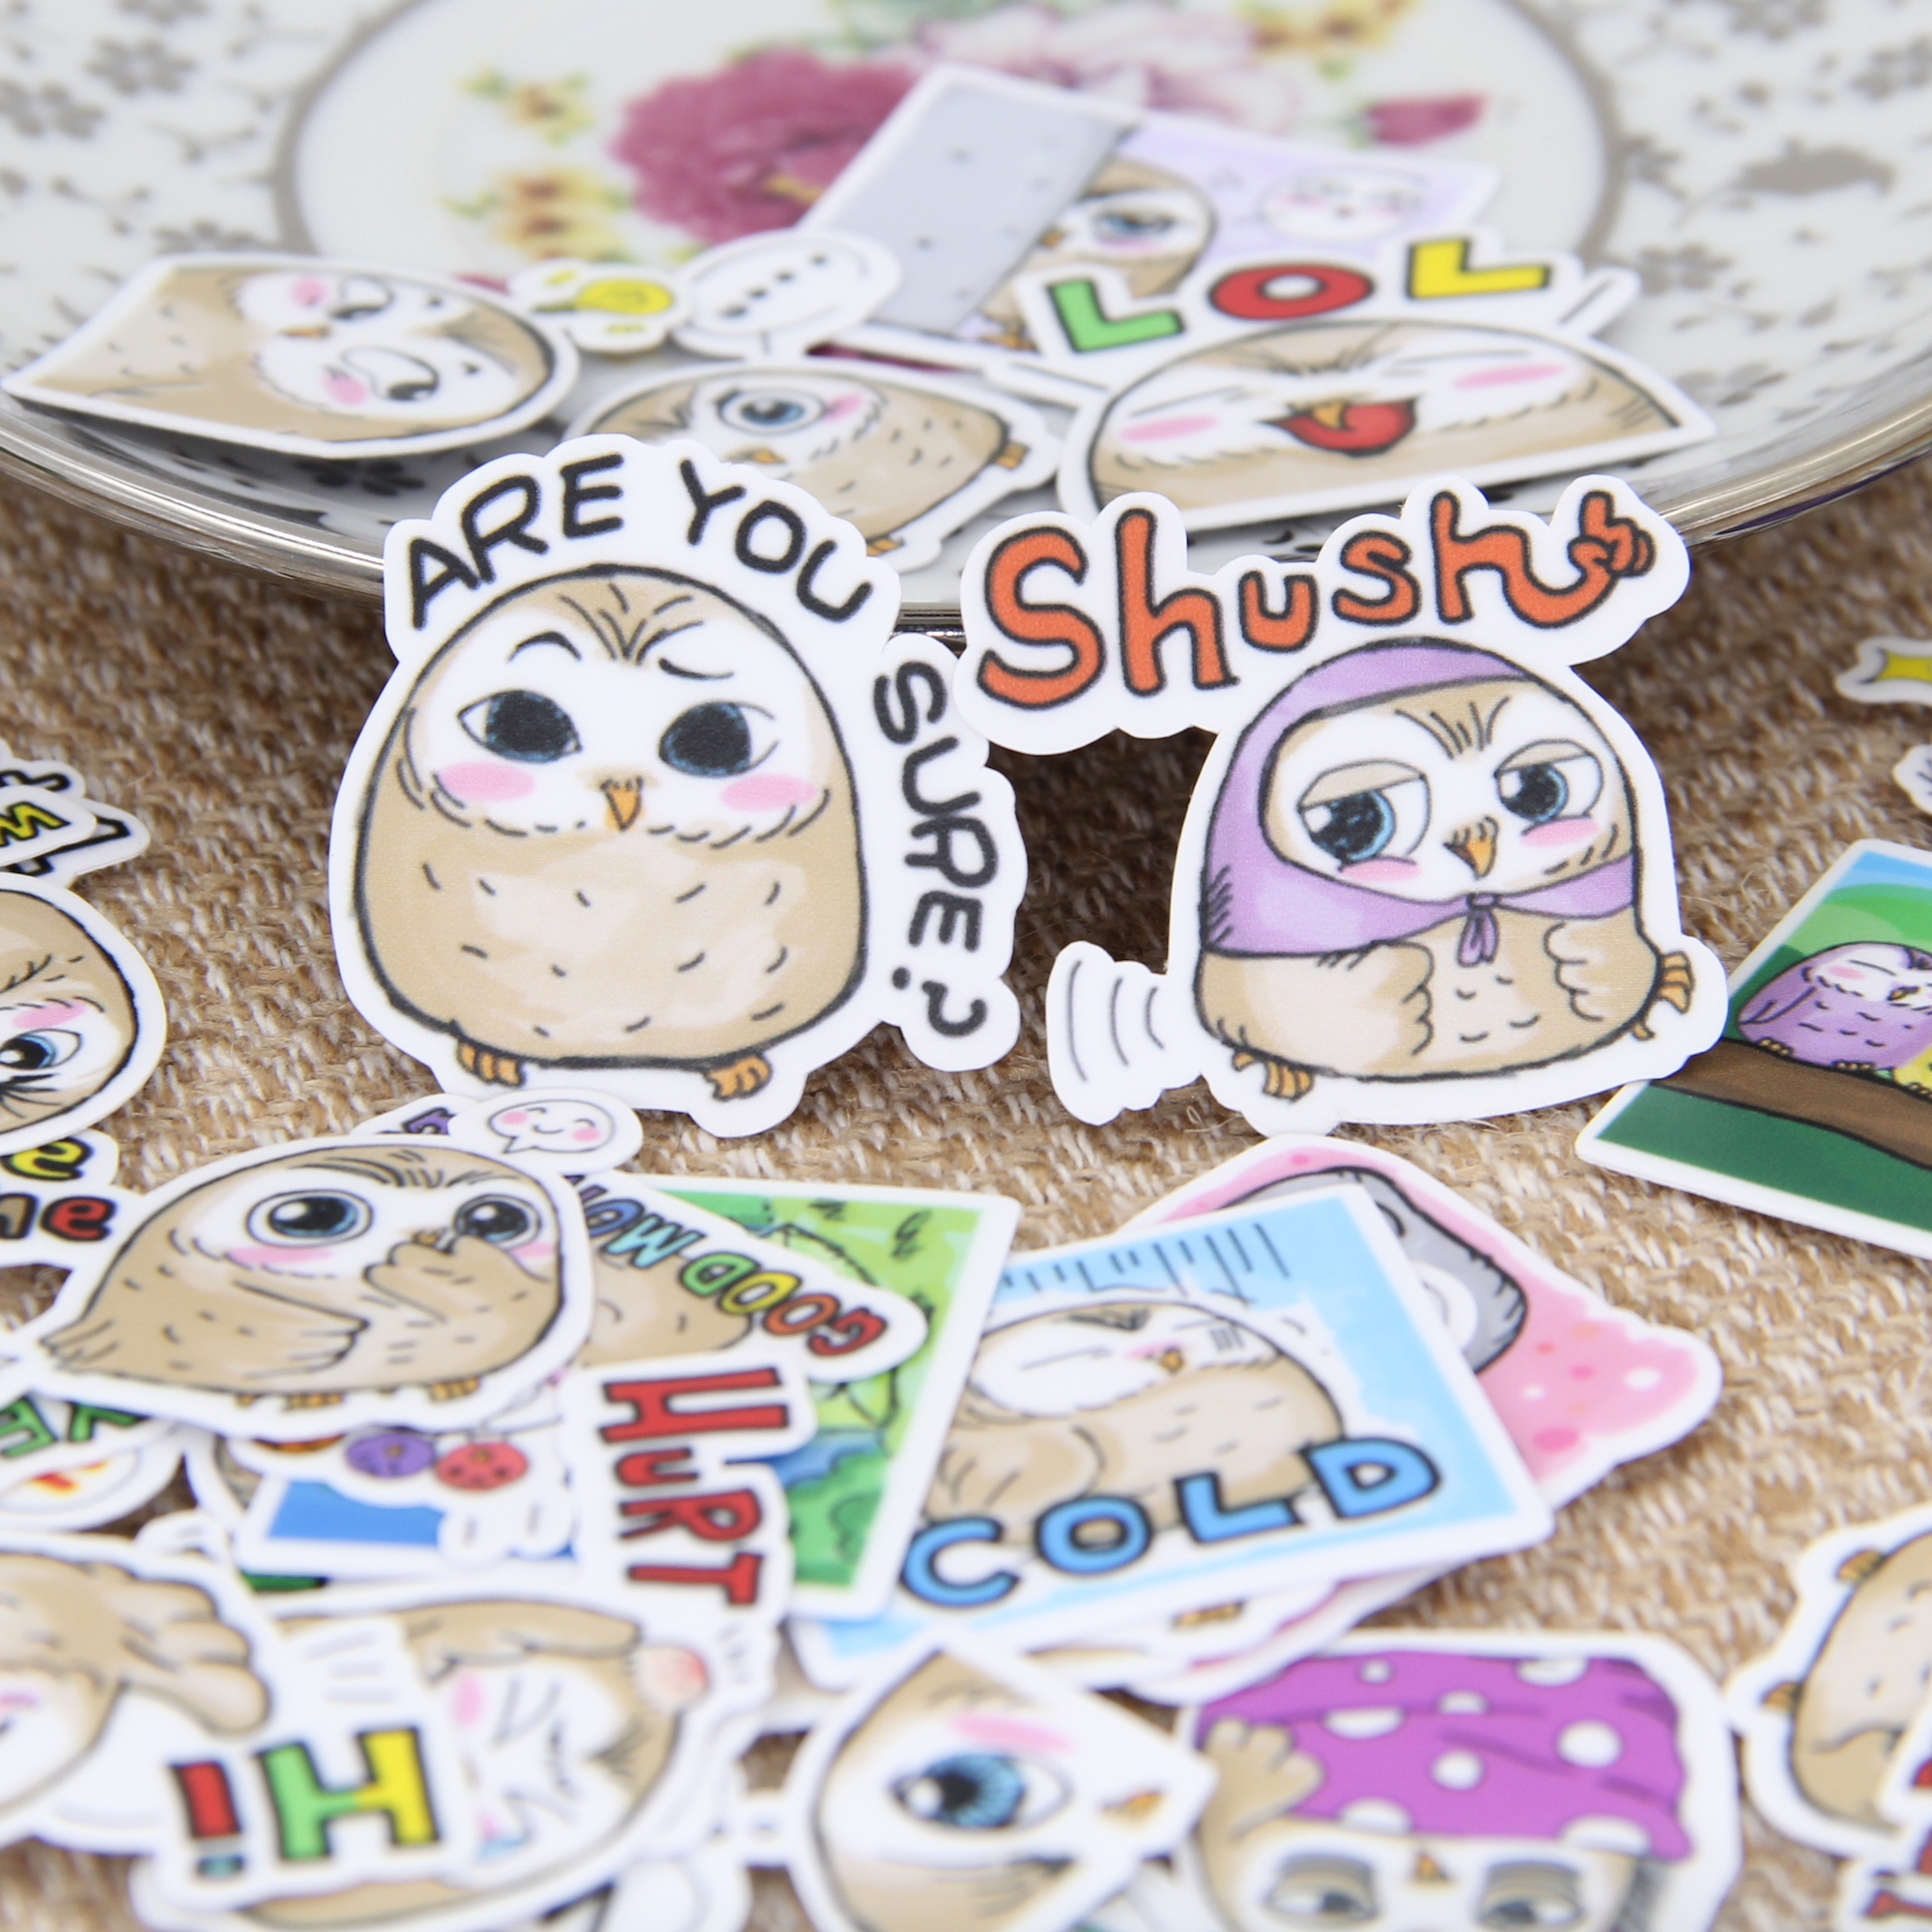 40pcs Self-made Cute Owl Scrapbooking Stickers Owl Animal DIY Craft Decrative Sticker Pack Photo Albums Deco Diary Deco geoff burch self made me why being self employed beats everyday employment